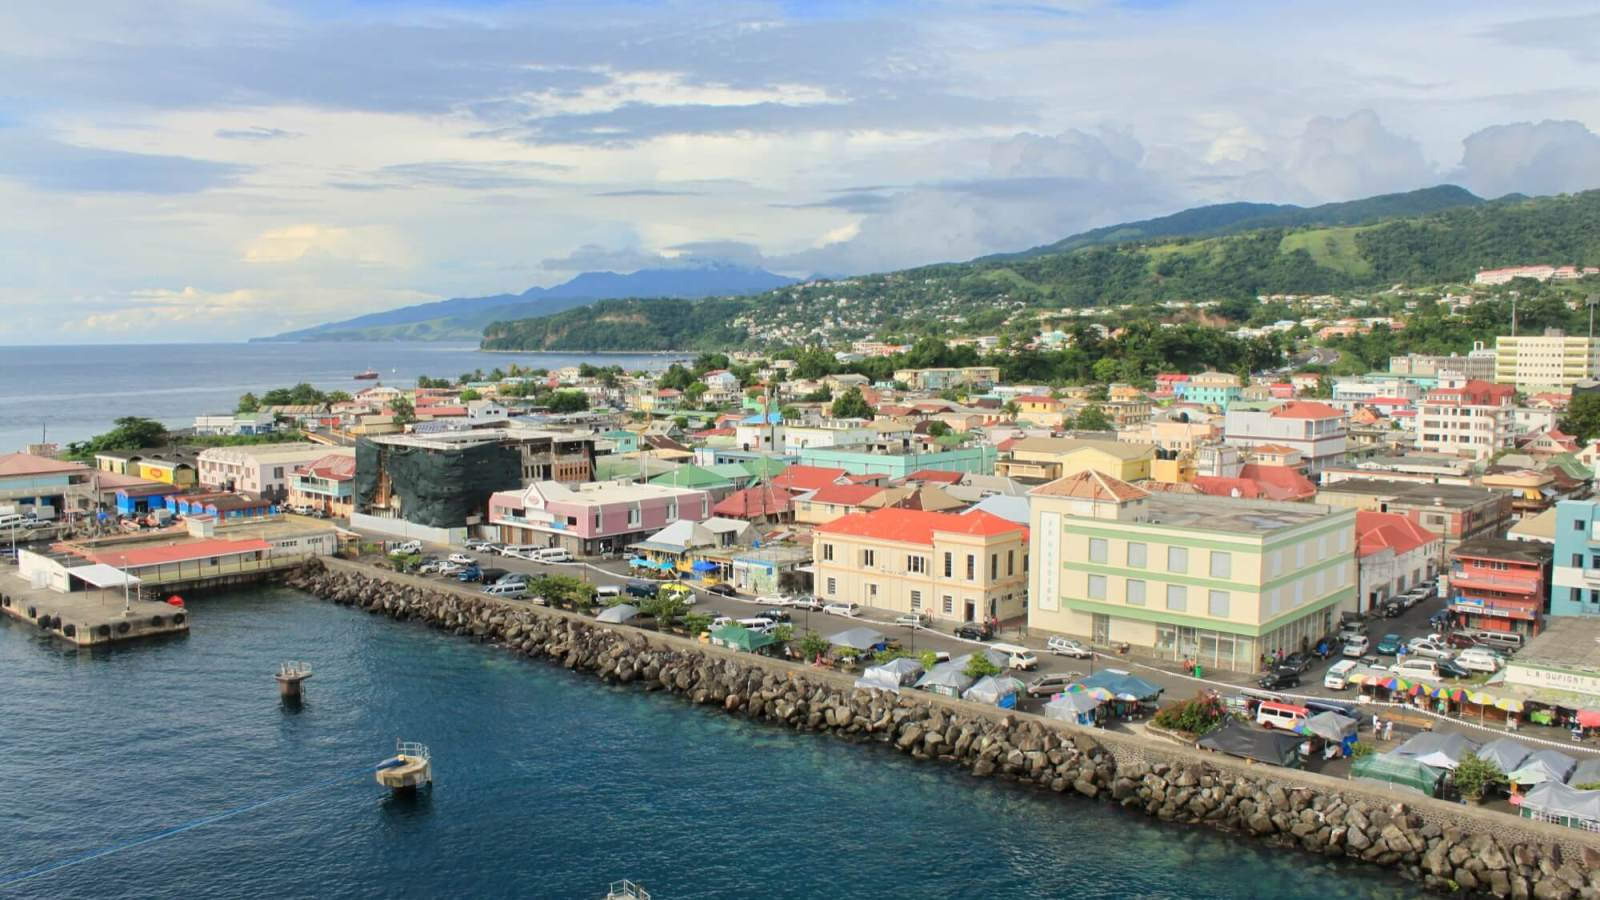 Roseau, Dominica, from the deck of a cruise ship